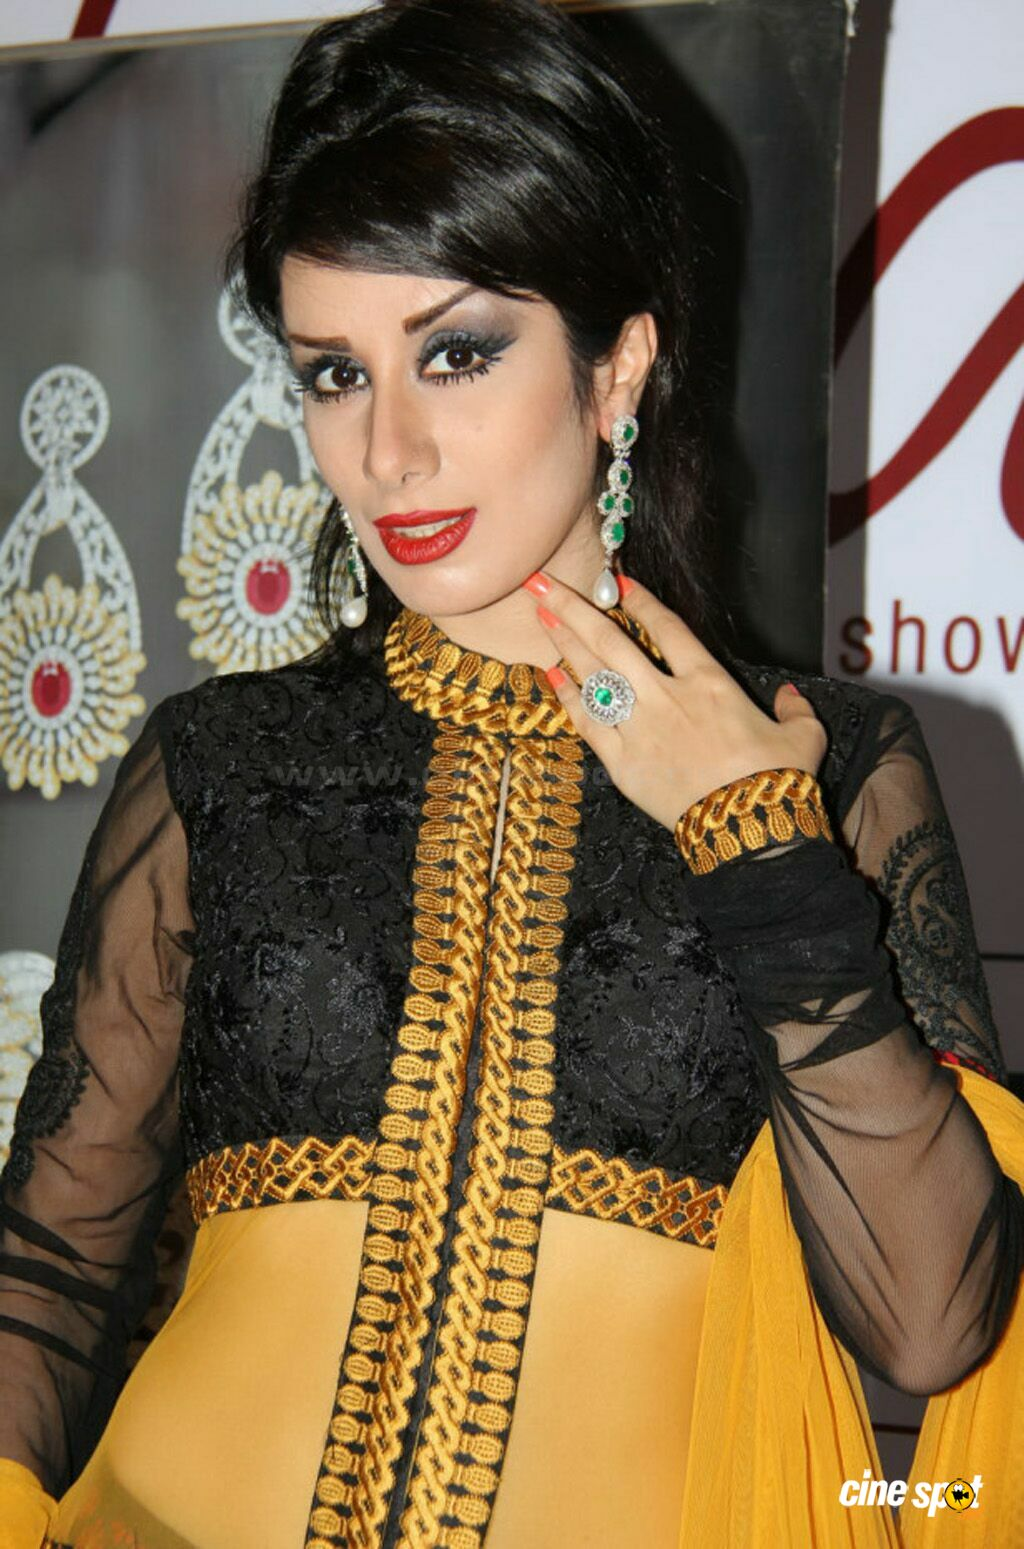 Nazia at Times Gehena Jewellery and Bridal Exhibition (8)